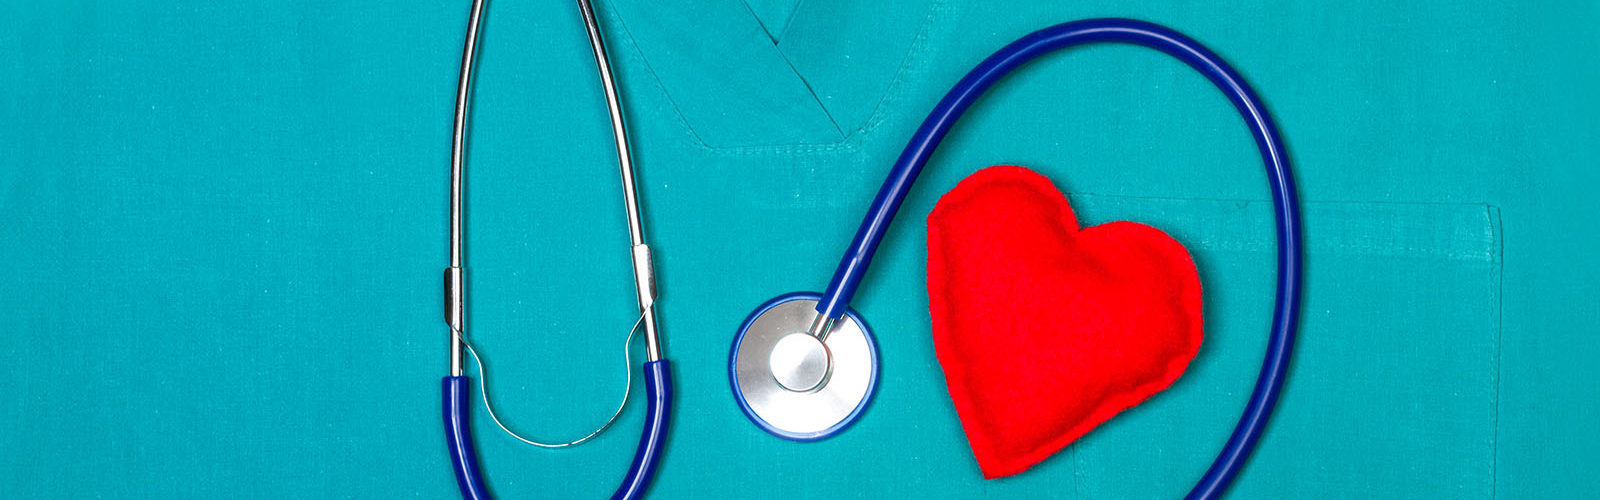 bigstock-A-Stethoscope-With-A-Fabric-Re-385644395_web.jpg